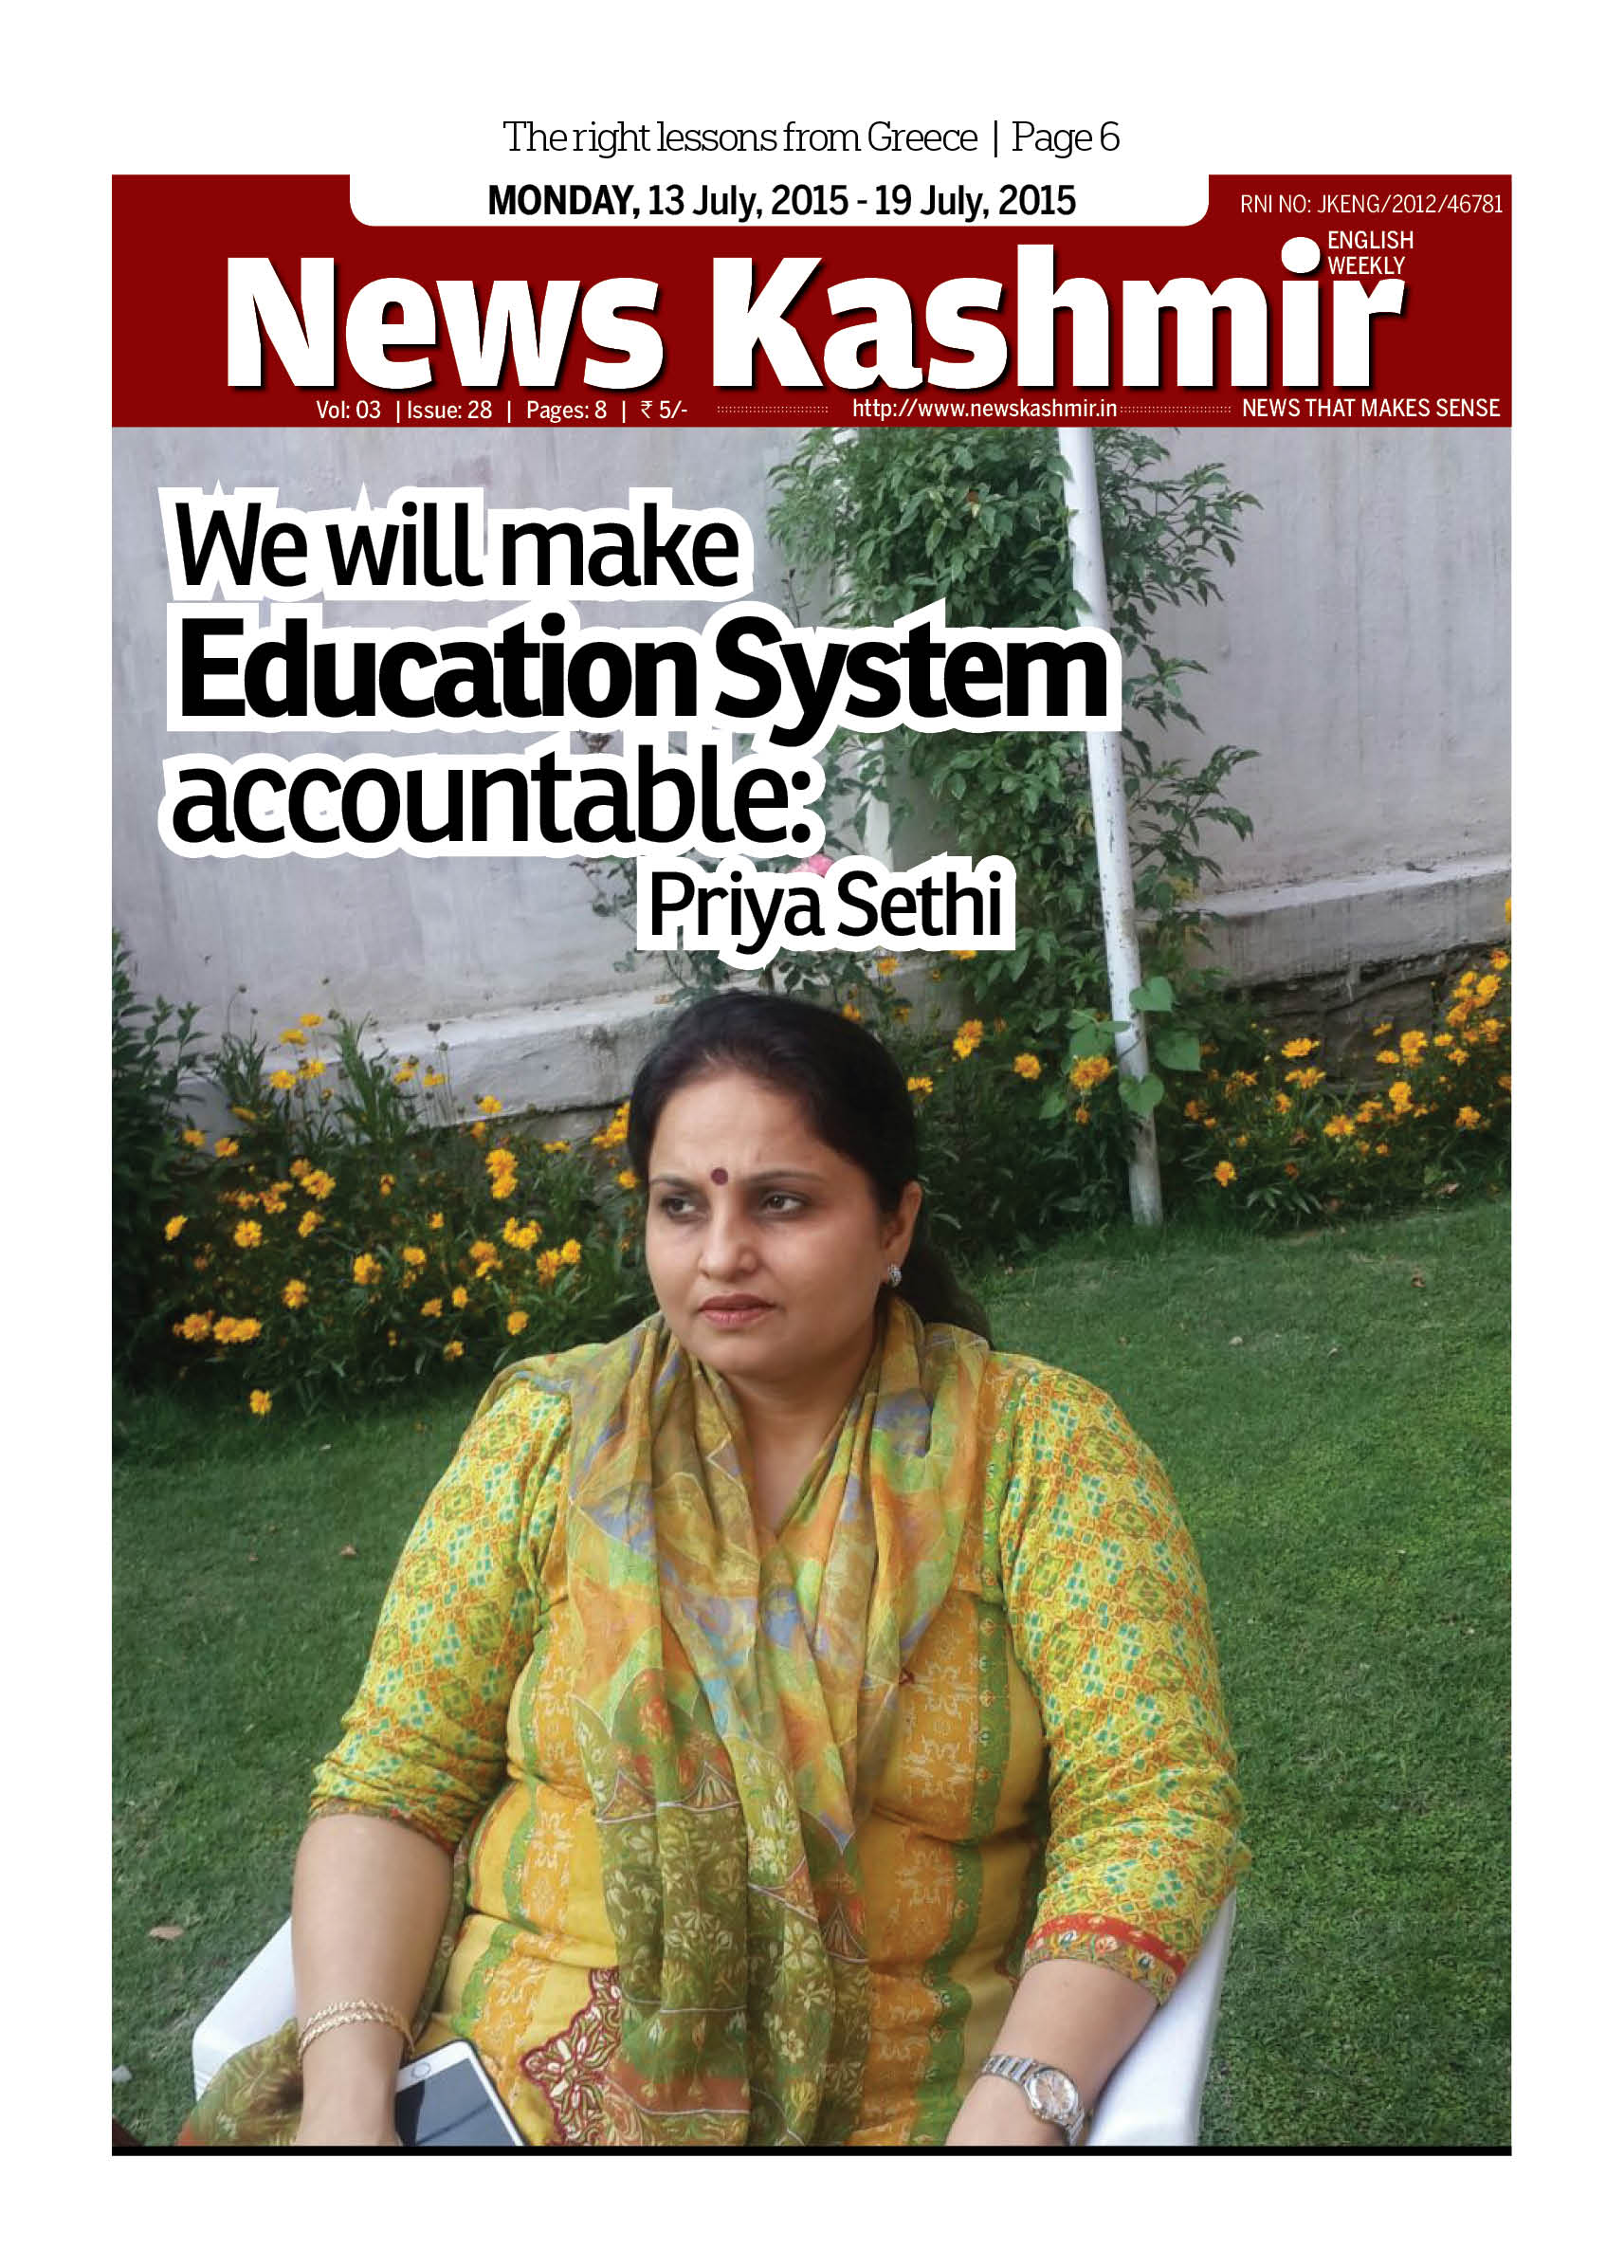 We will make Education System accountable: Priya Sethi